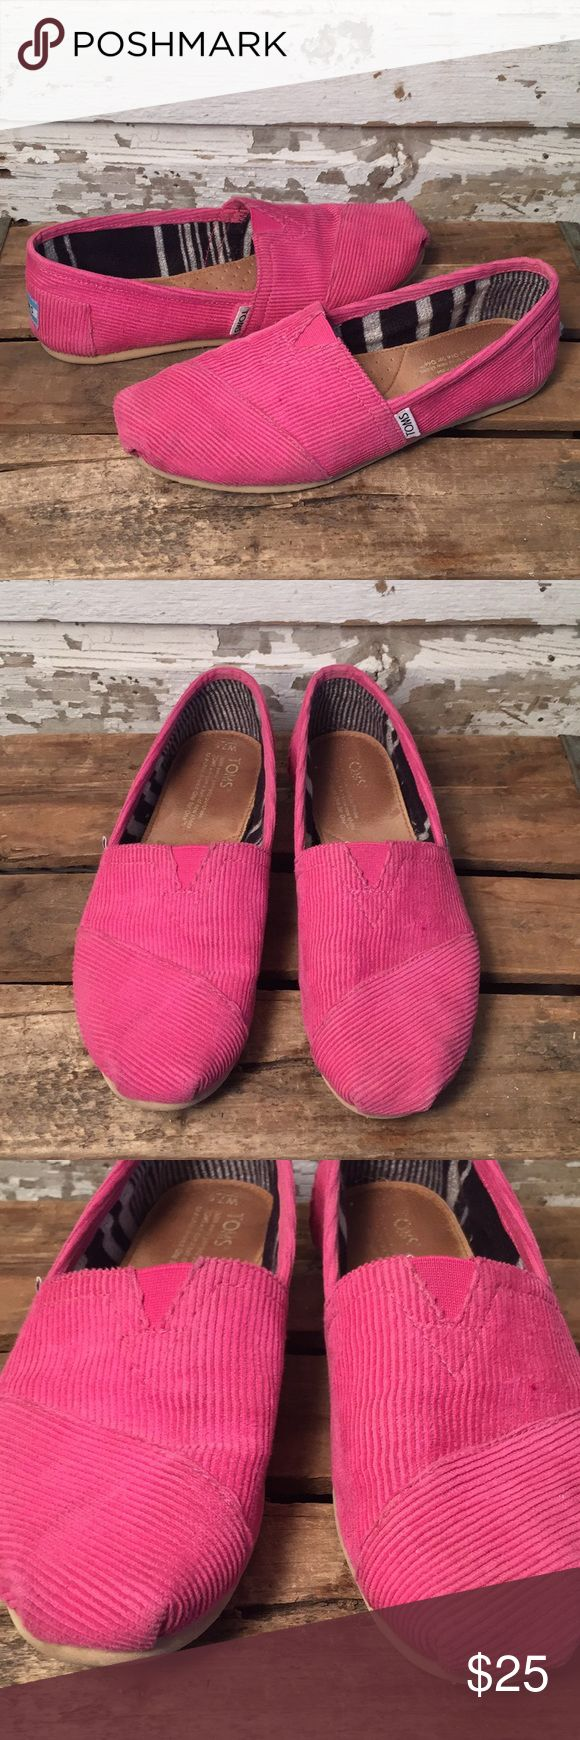 Rose TOMS Corduroy Classics Women's Size 7.5. Pink Toms Corduroy Classics. Preowned and in great shape. Please view all photos. Gently worn. Retails for $54 Toms Shoes Flats & Loafers